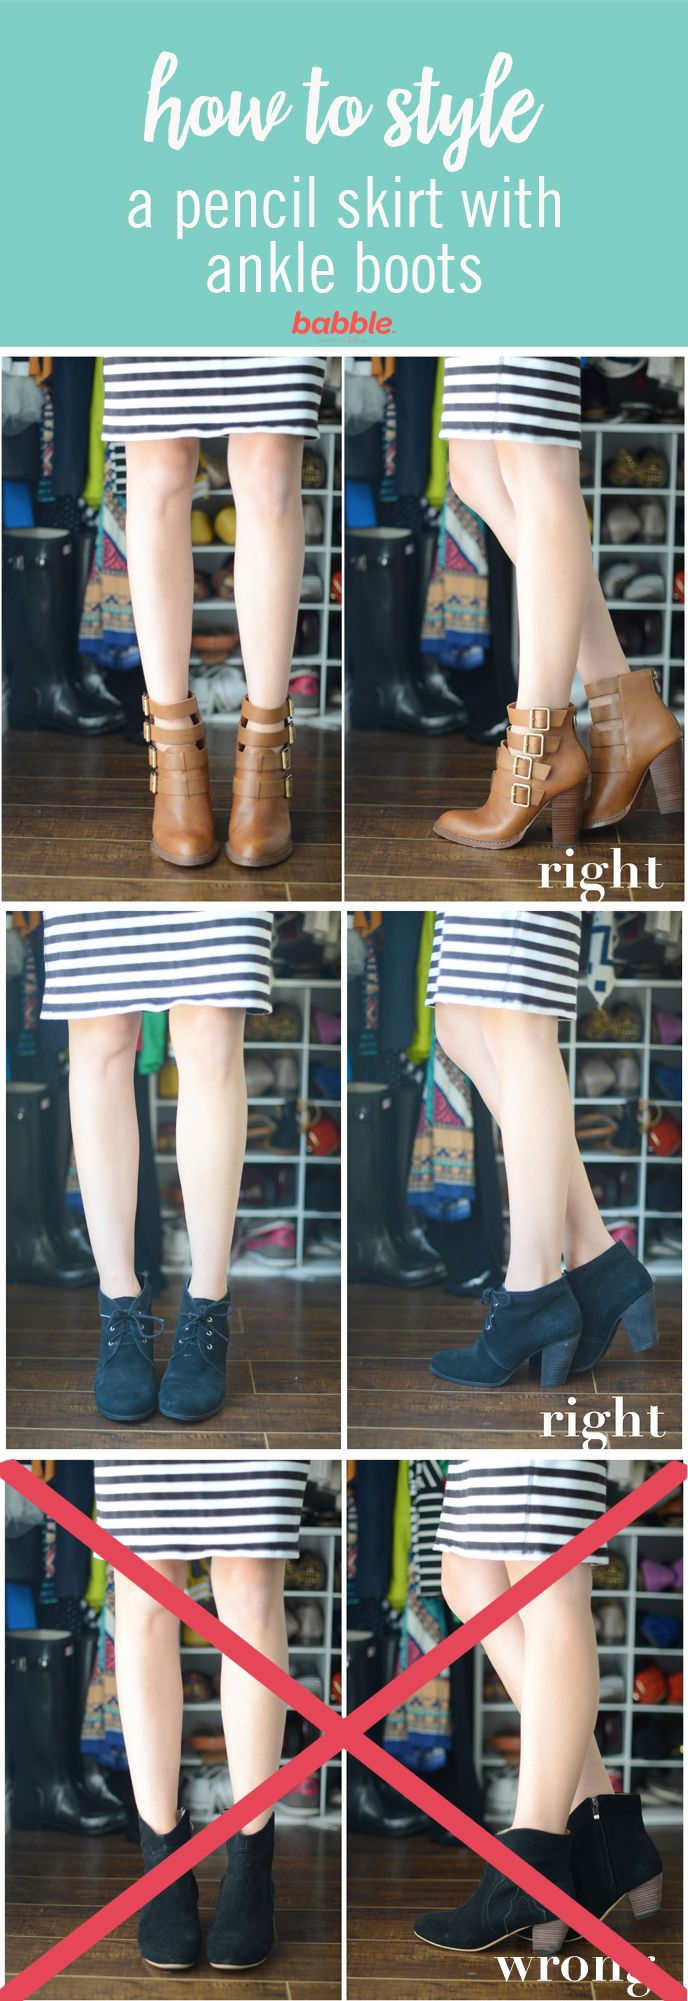 Ankle boots are one of those pieces that can be tricky to style. The most important thing about ankle boots is making sure they flatter your leg line.